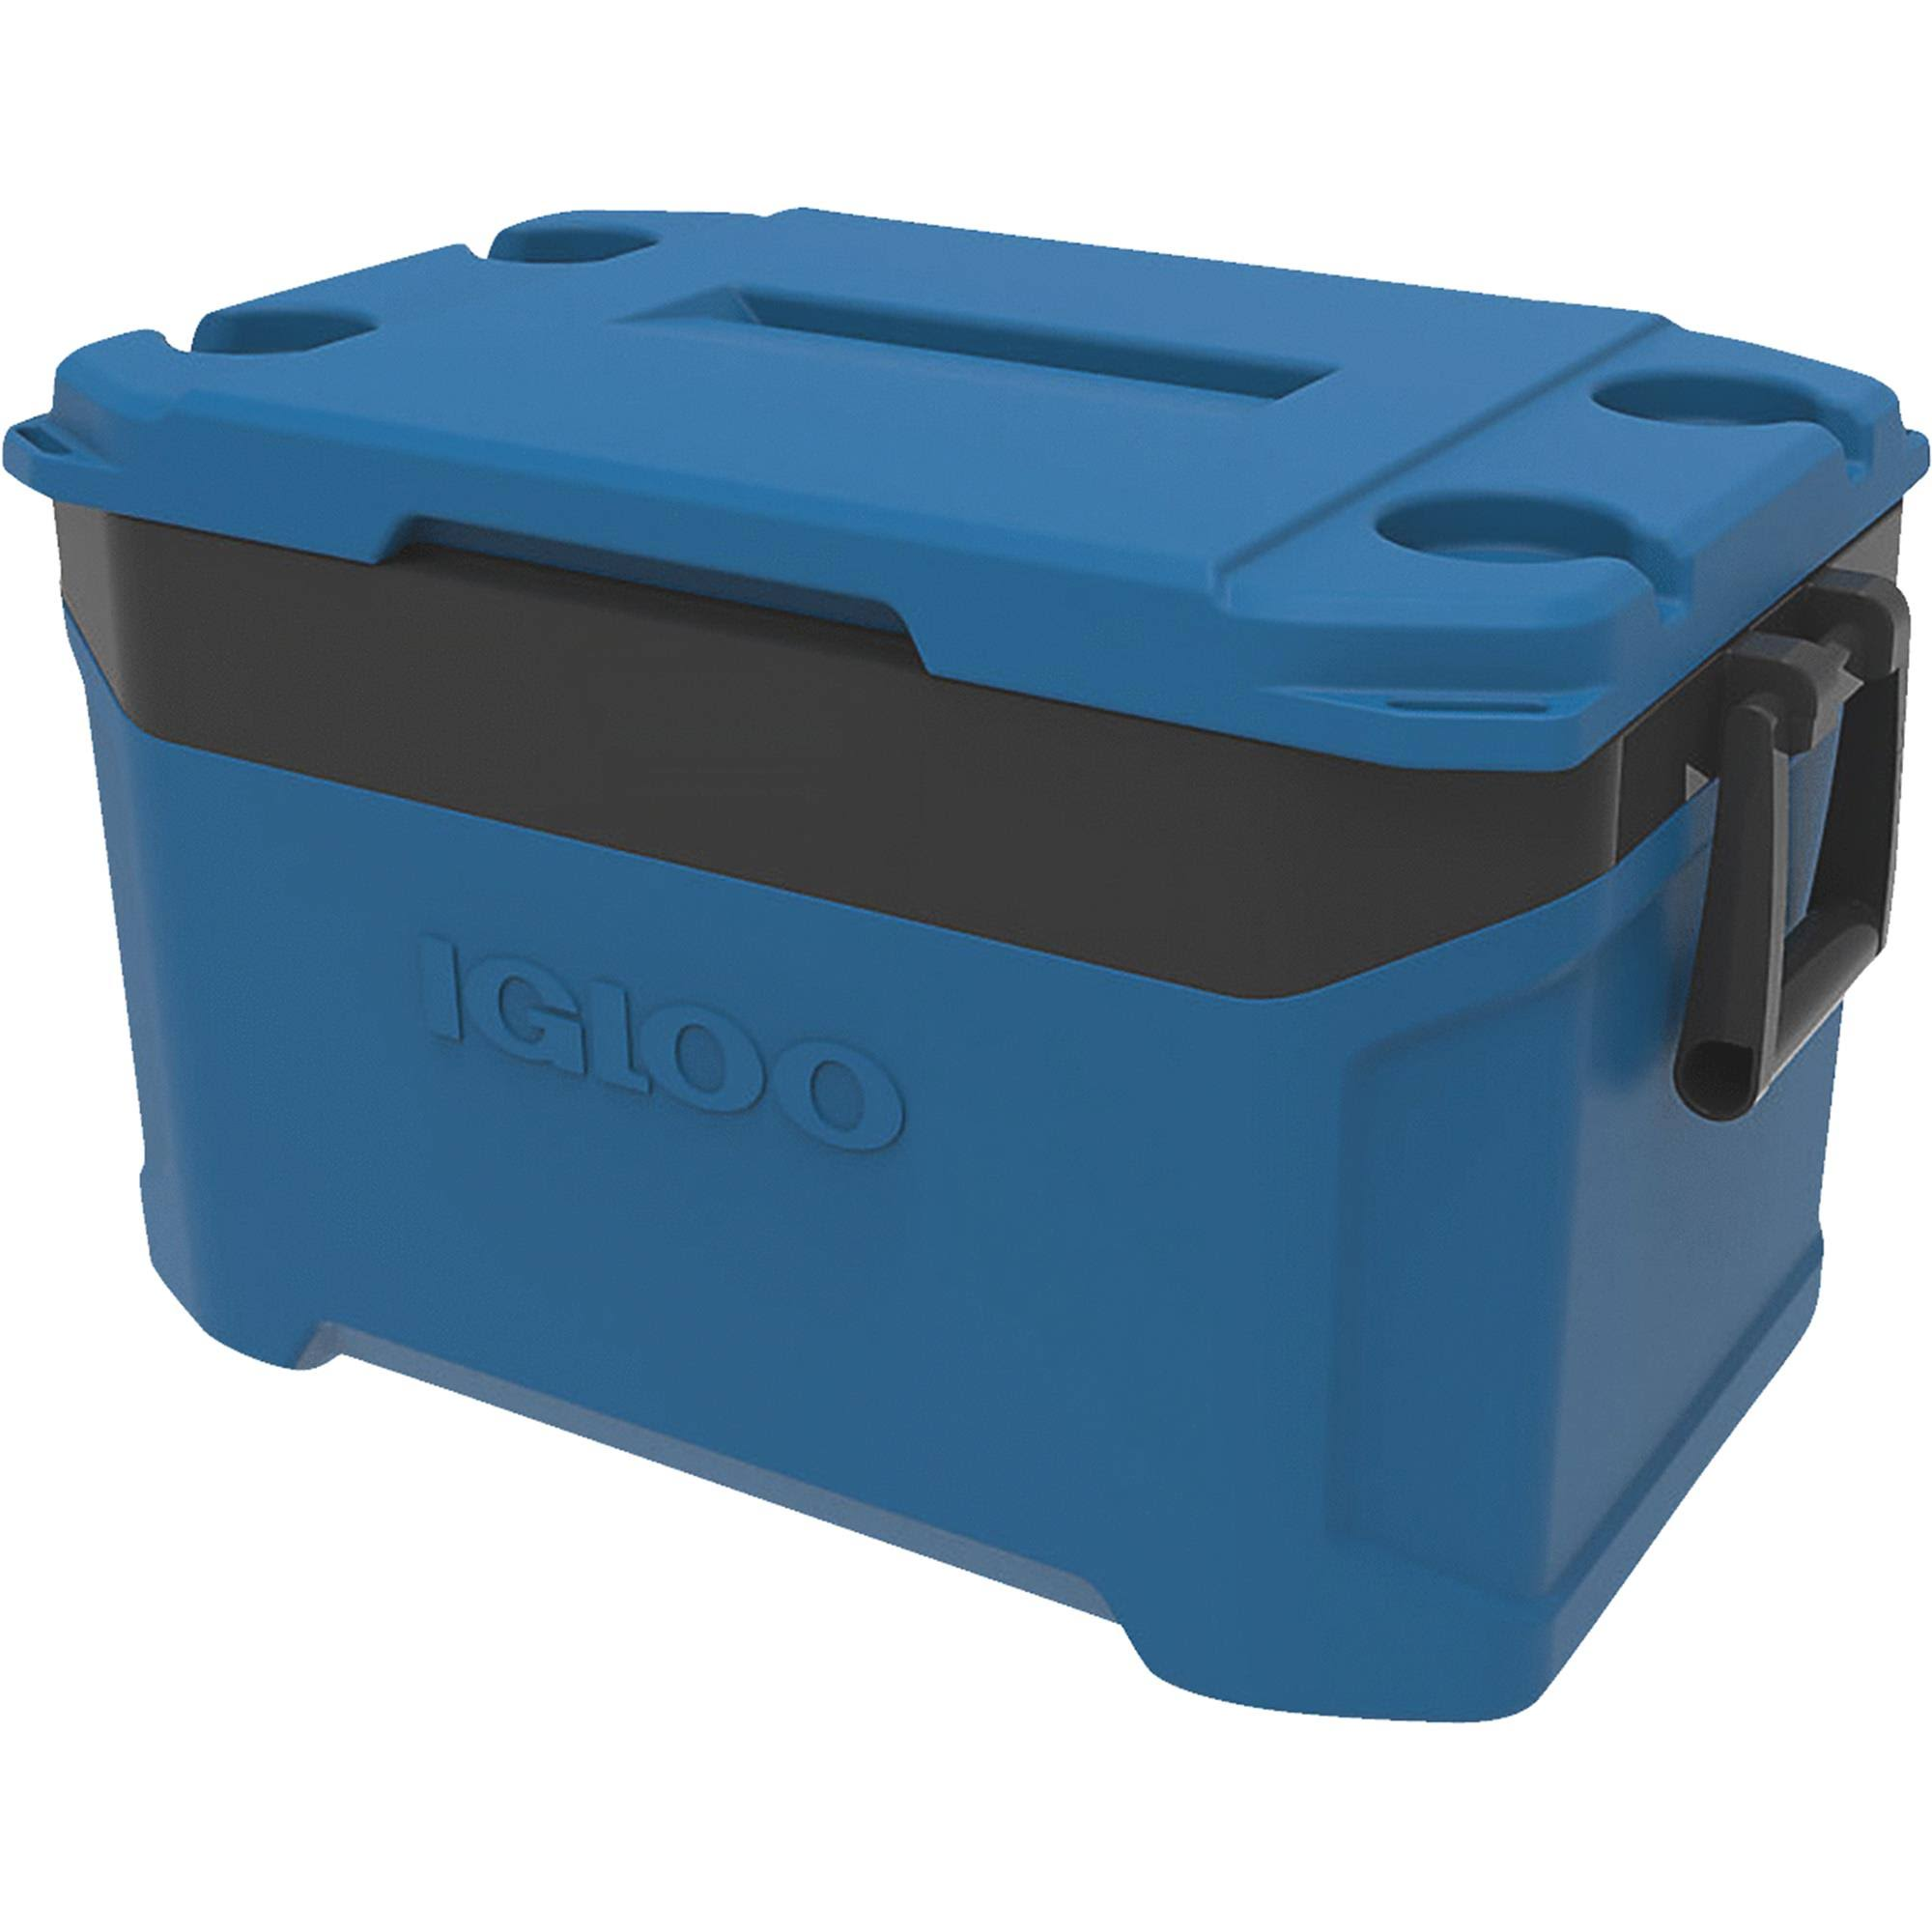 Igloo 49886 Latitude Cooler, 50 Quart